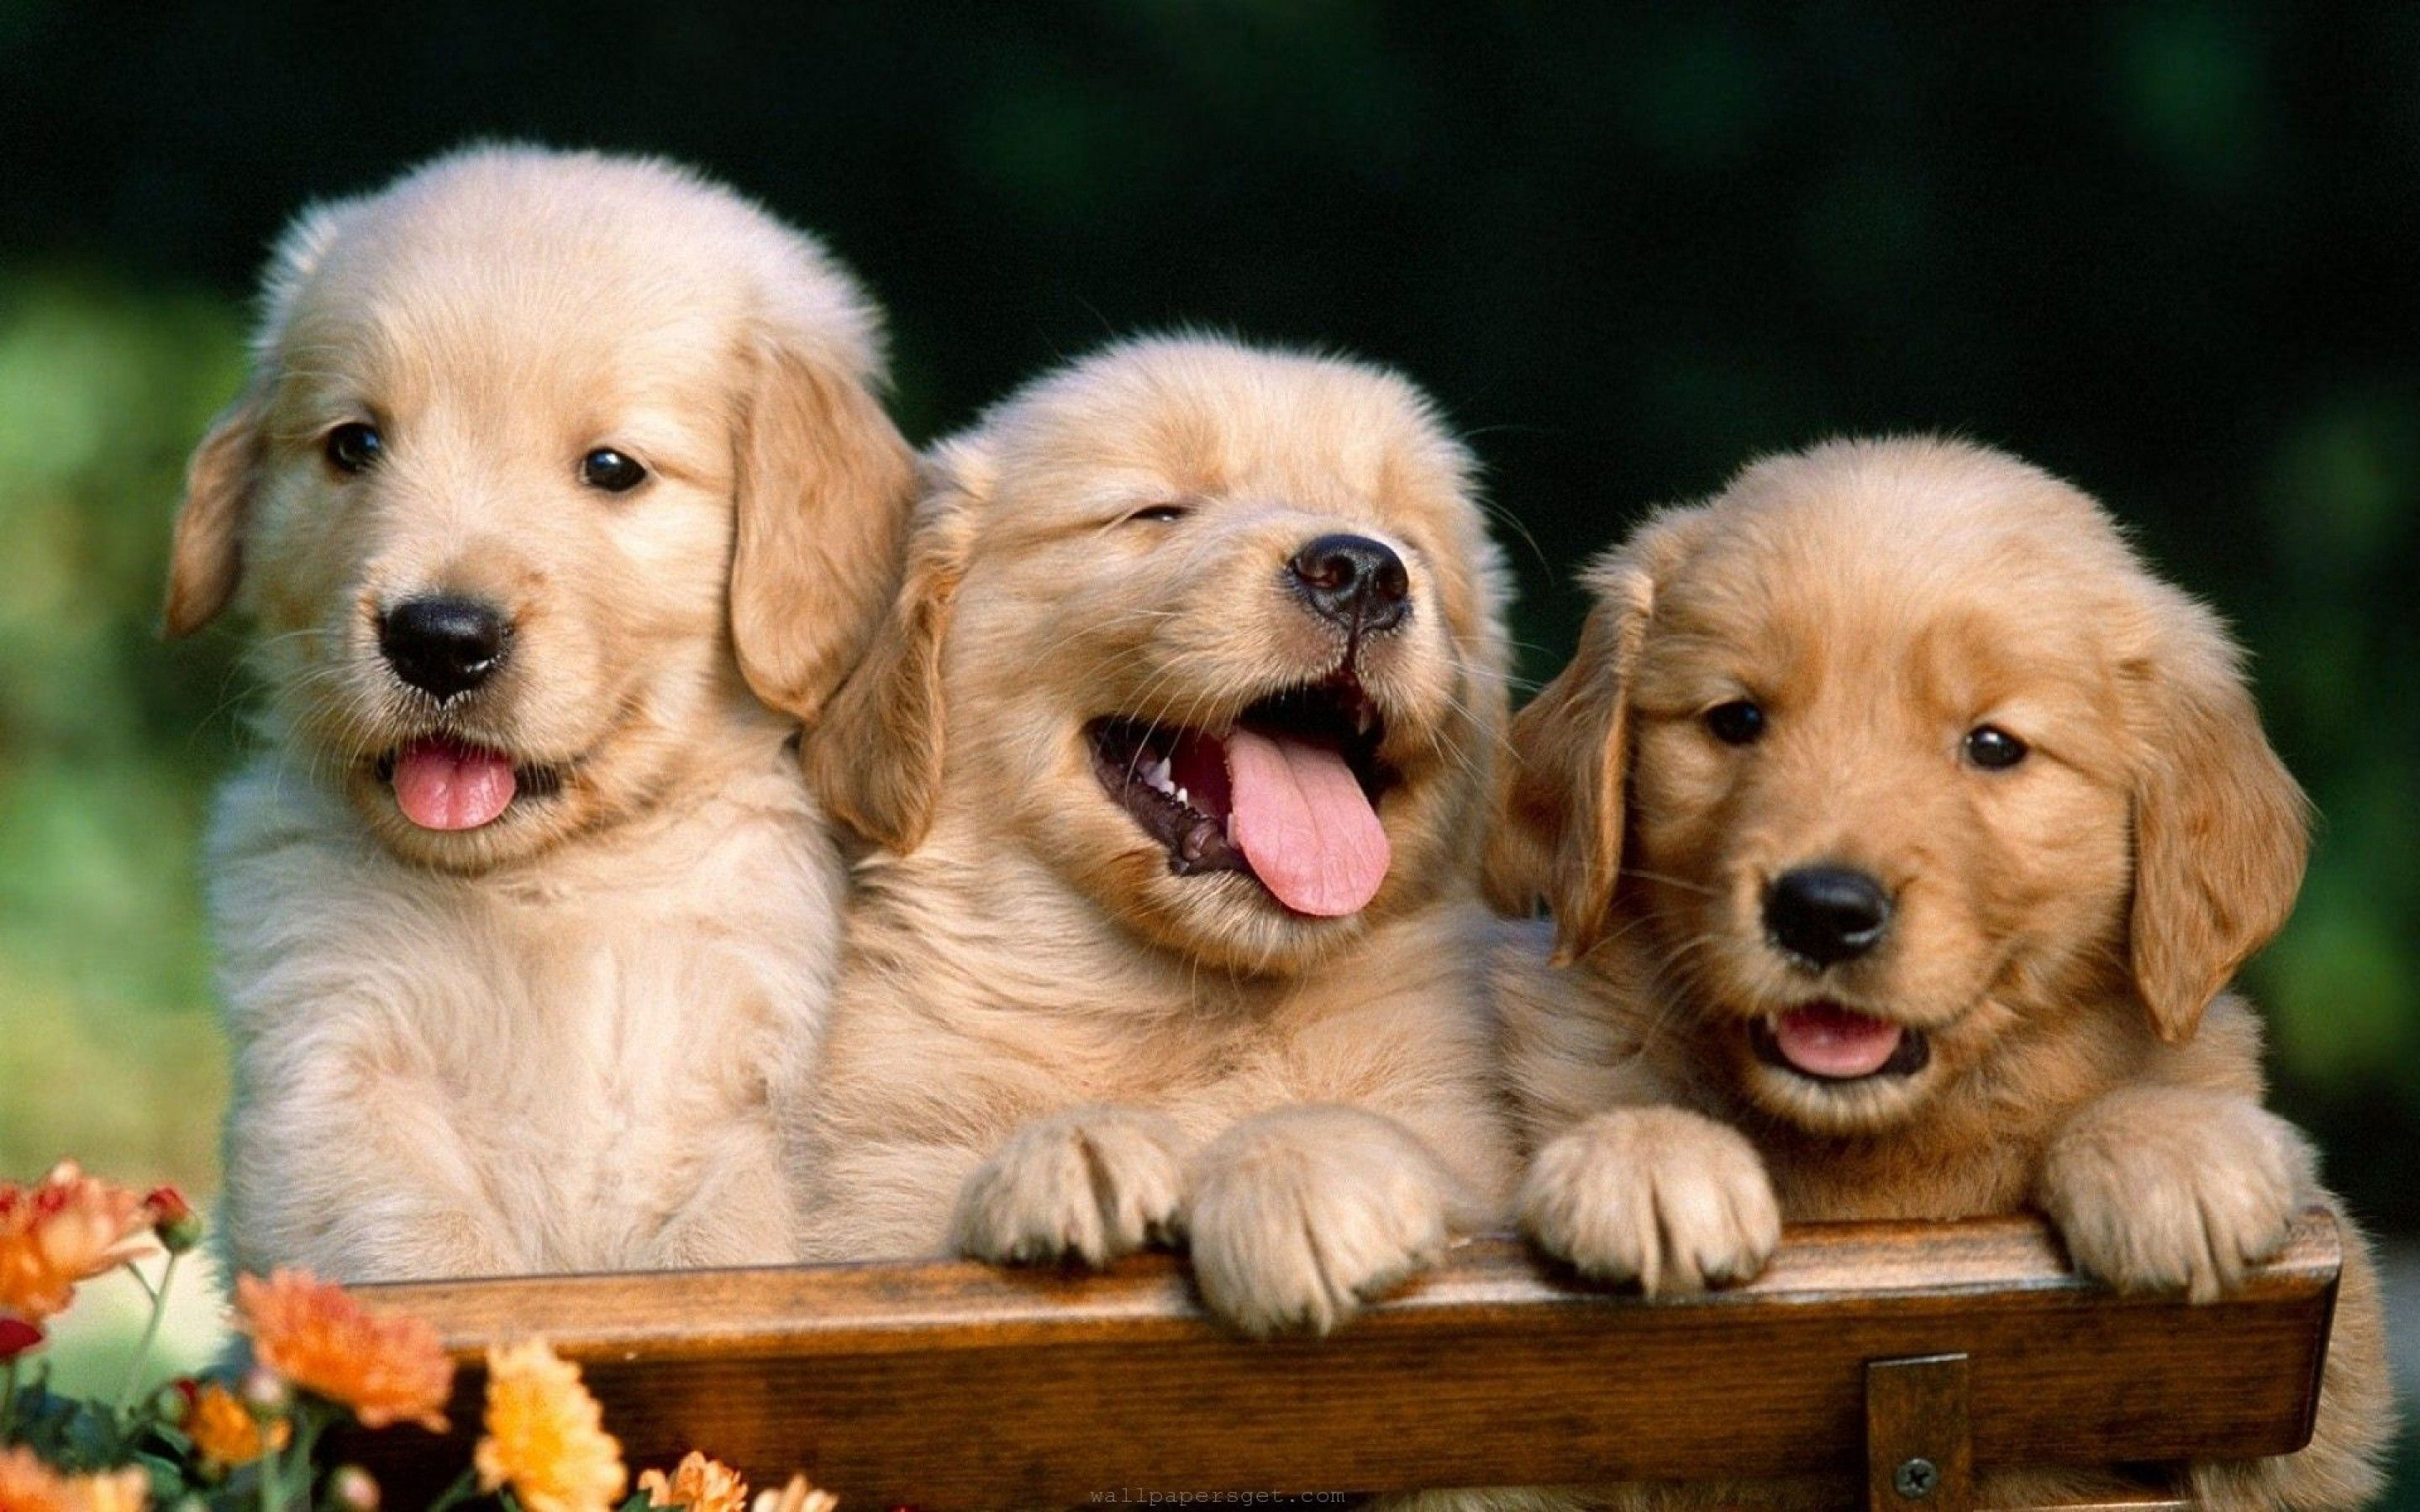 Cute Dog Wallpapers - Mejores fondos de pantalla de Cute Dog gratis - WallpaperAccess